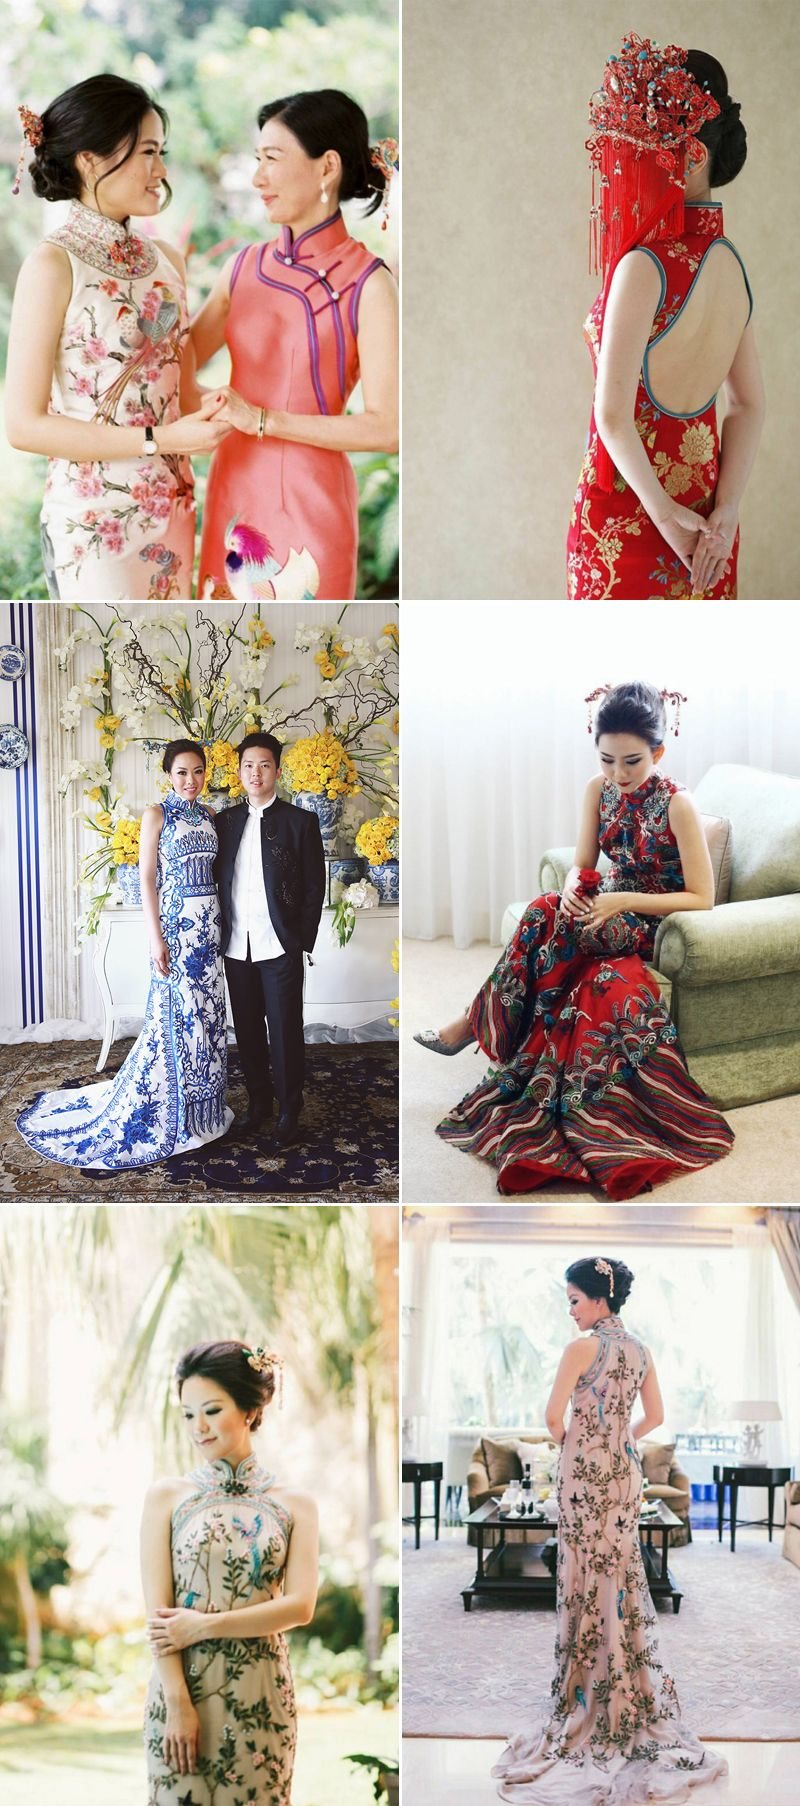 We Love The Beauty Of Modern Weddings That Bine Two Cultures Together And One See Quite Often Is Bination Chinese Western Traditions: Modern Asian Wedding Dresses At Reisefeber.org